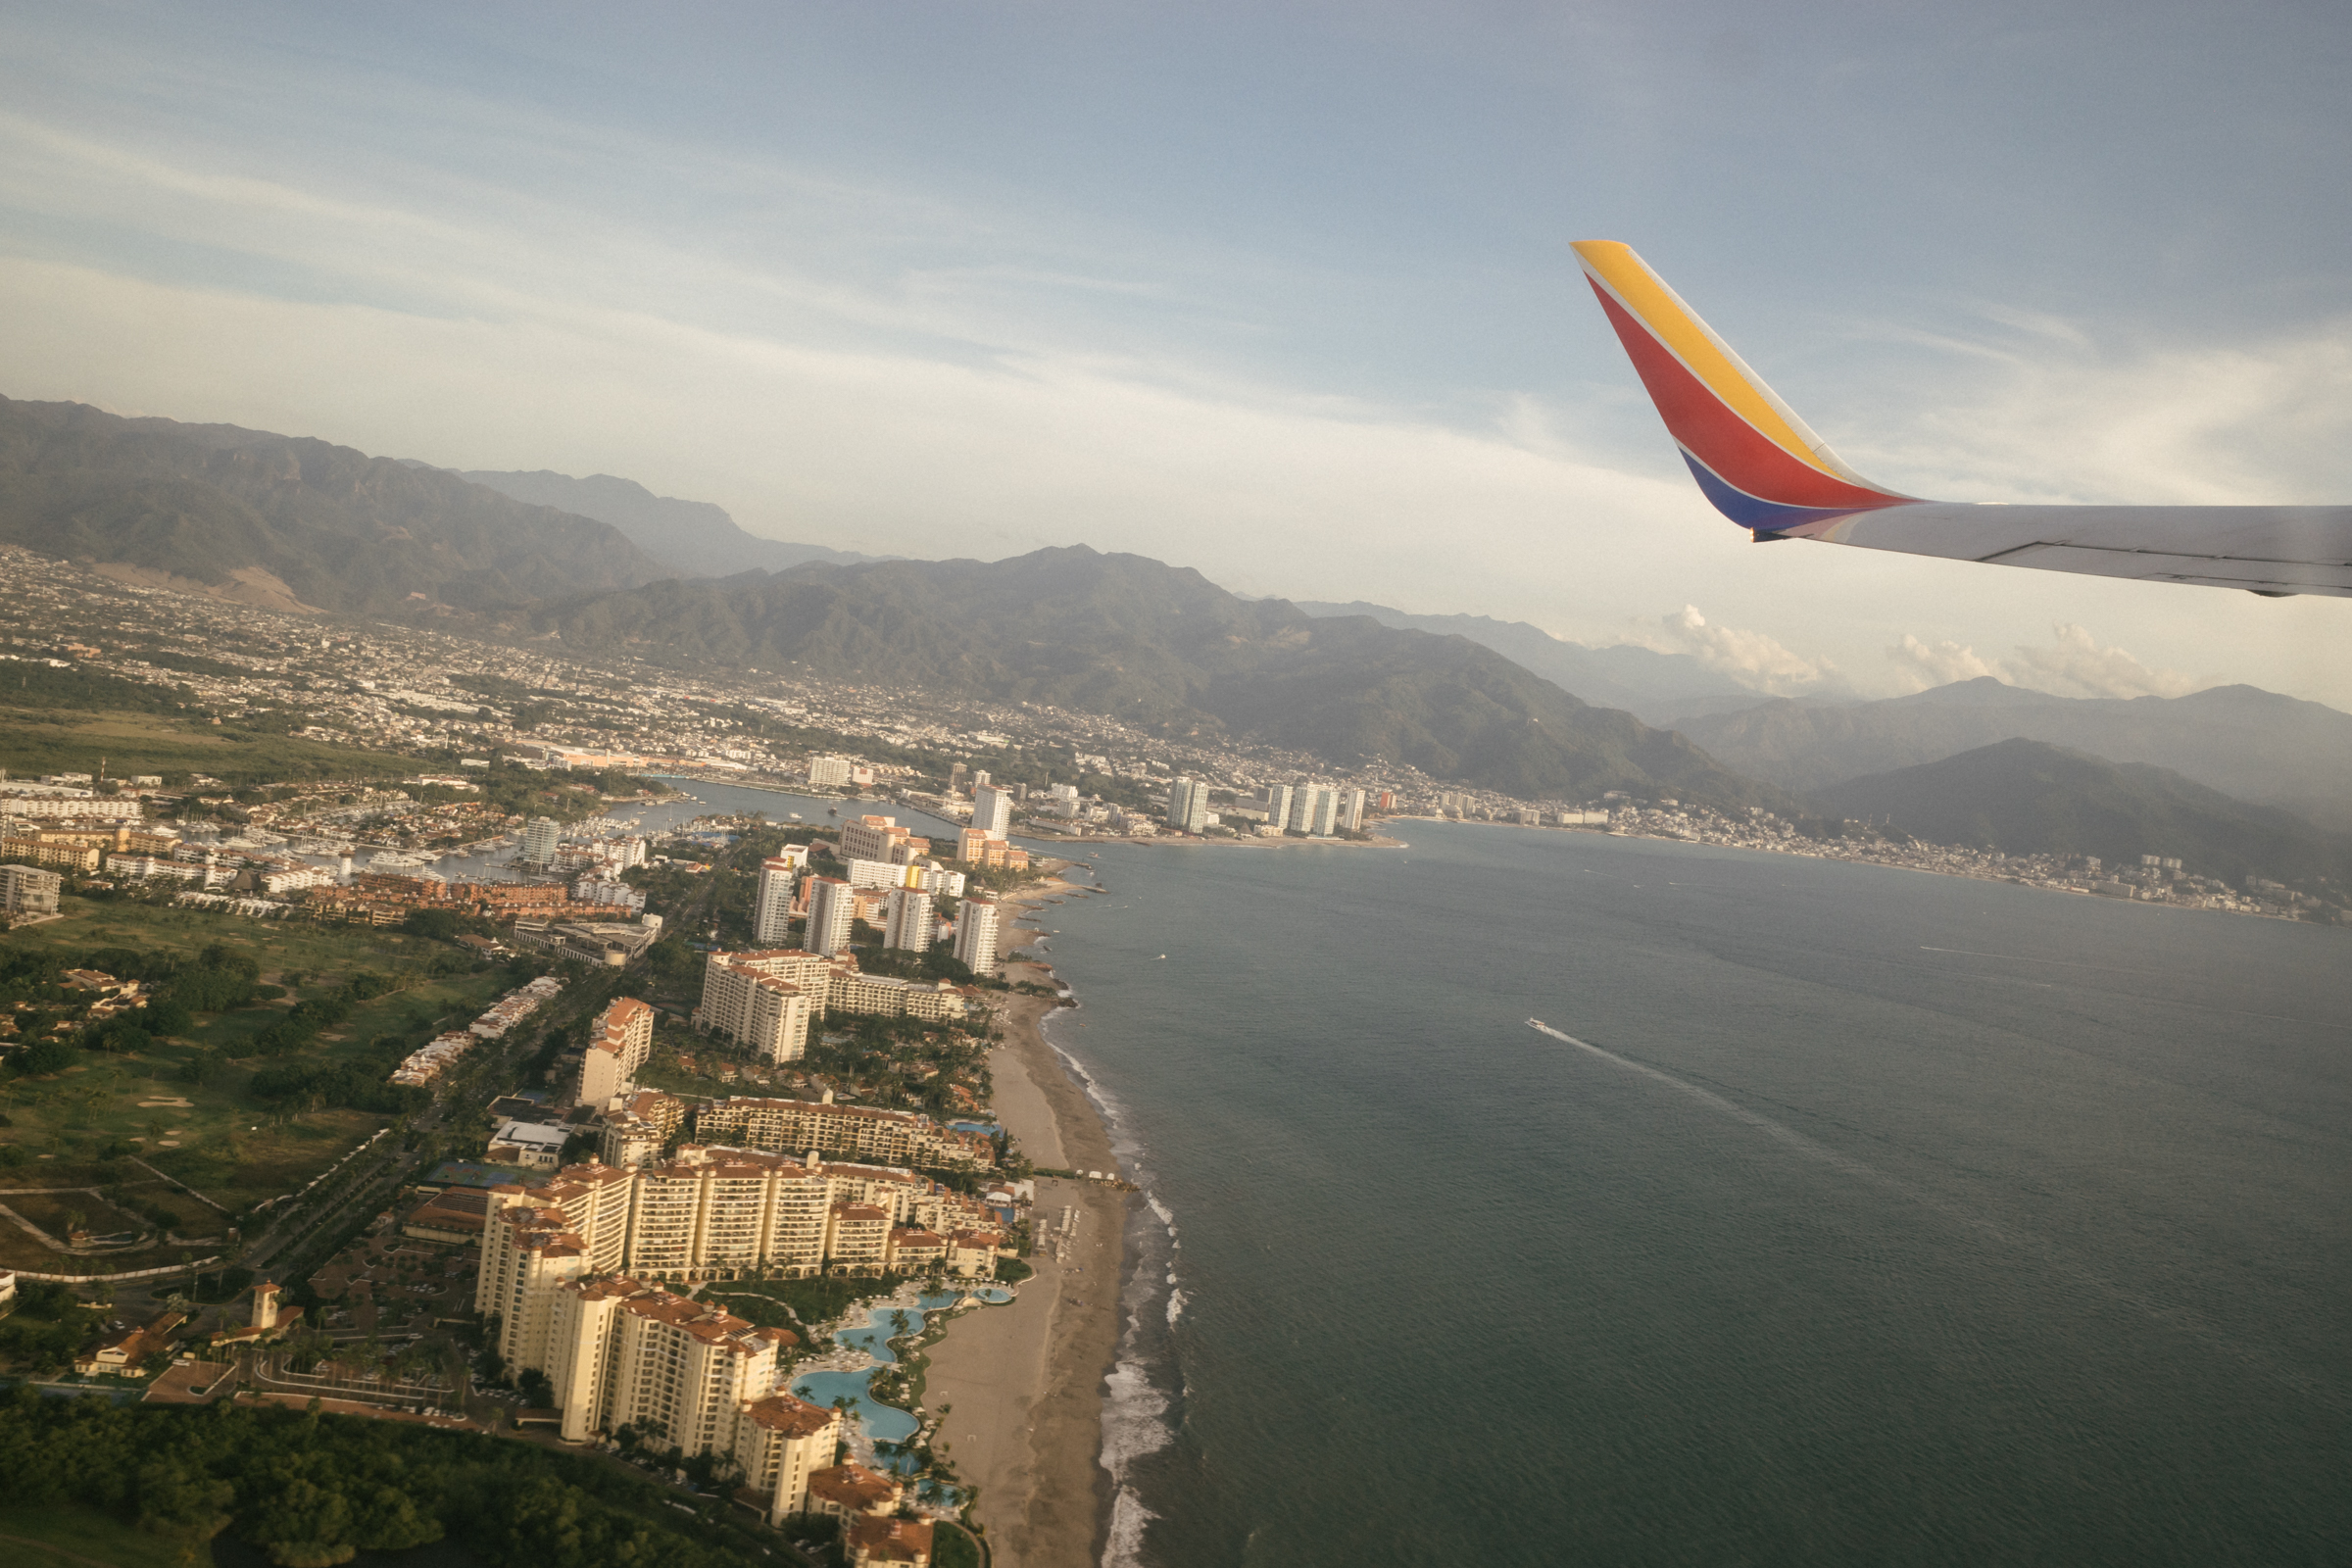 Southwest flying into Puerto Vallarta